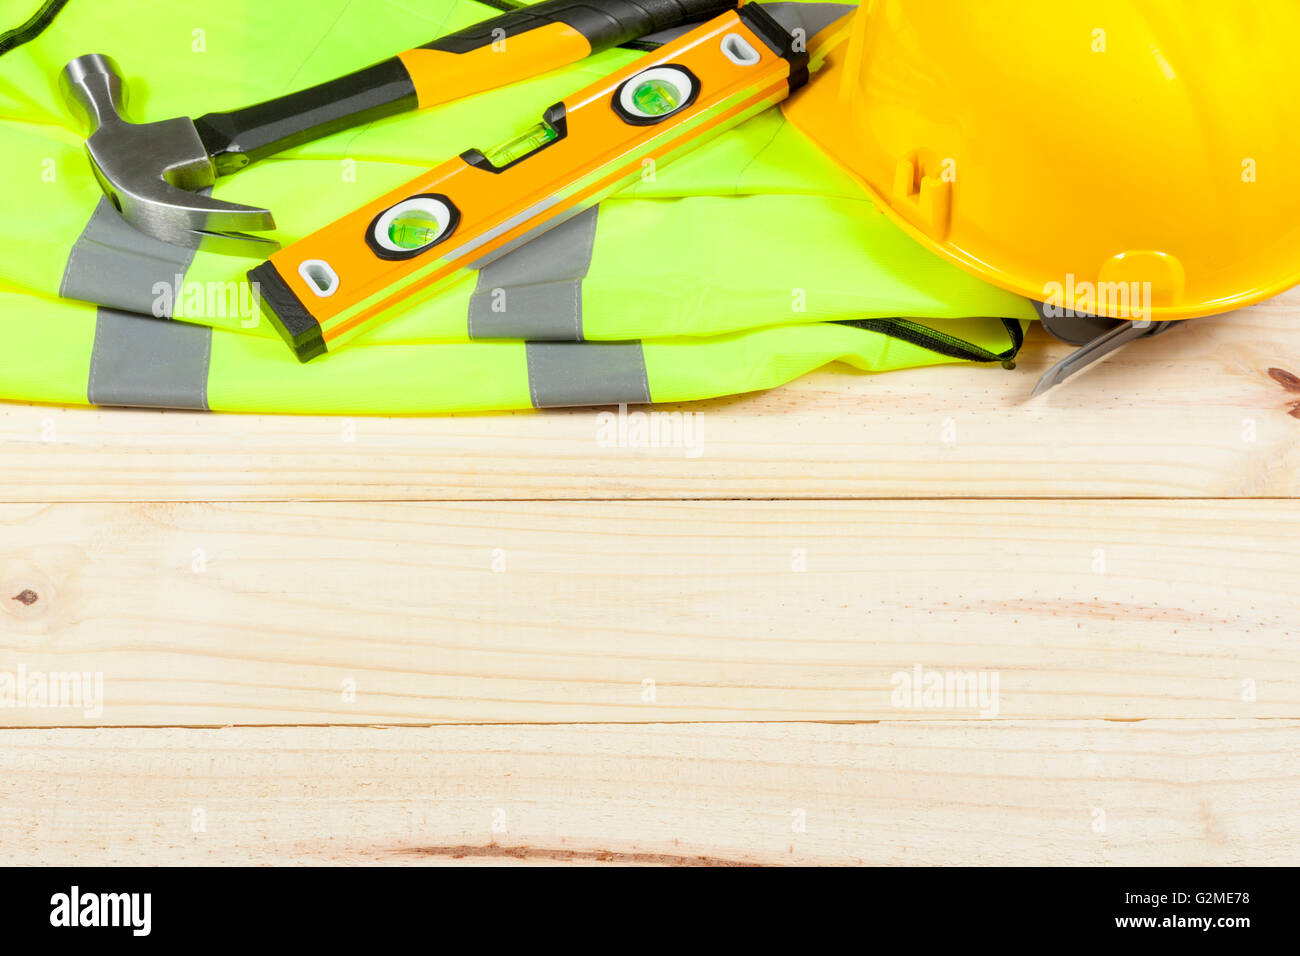 Claw hammer,spirit  level and yellow hard hat laying on a high visibility vest on a wooden background - Stock Image